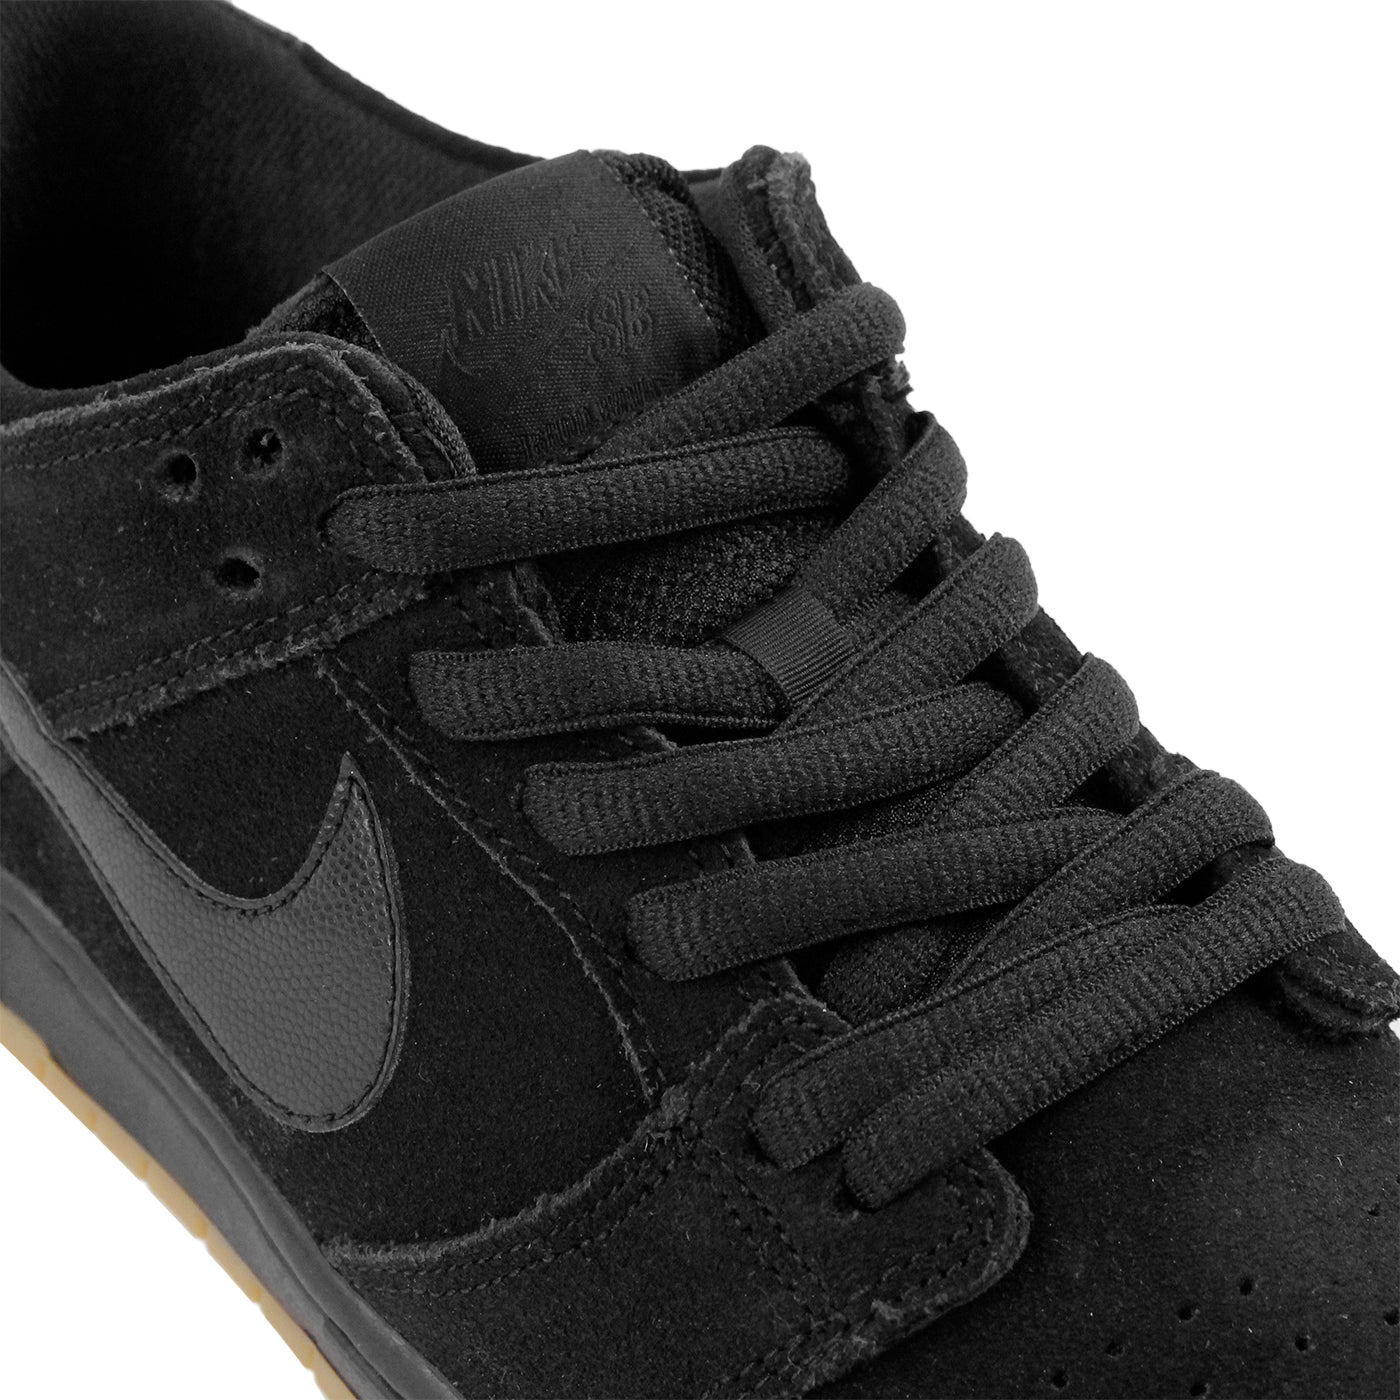 the best attitude 43be0 520d1 Nike SB Dunk Low Pro Ishod Wair Shoes - Black  Black-Gum Light Brown. Size  Charts